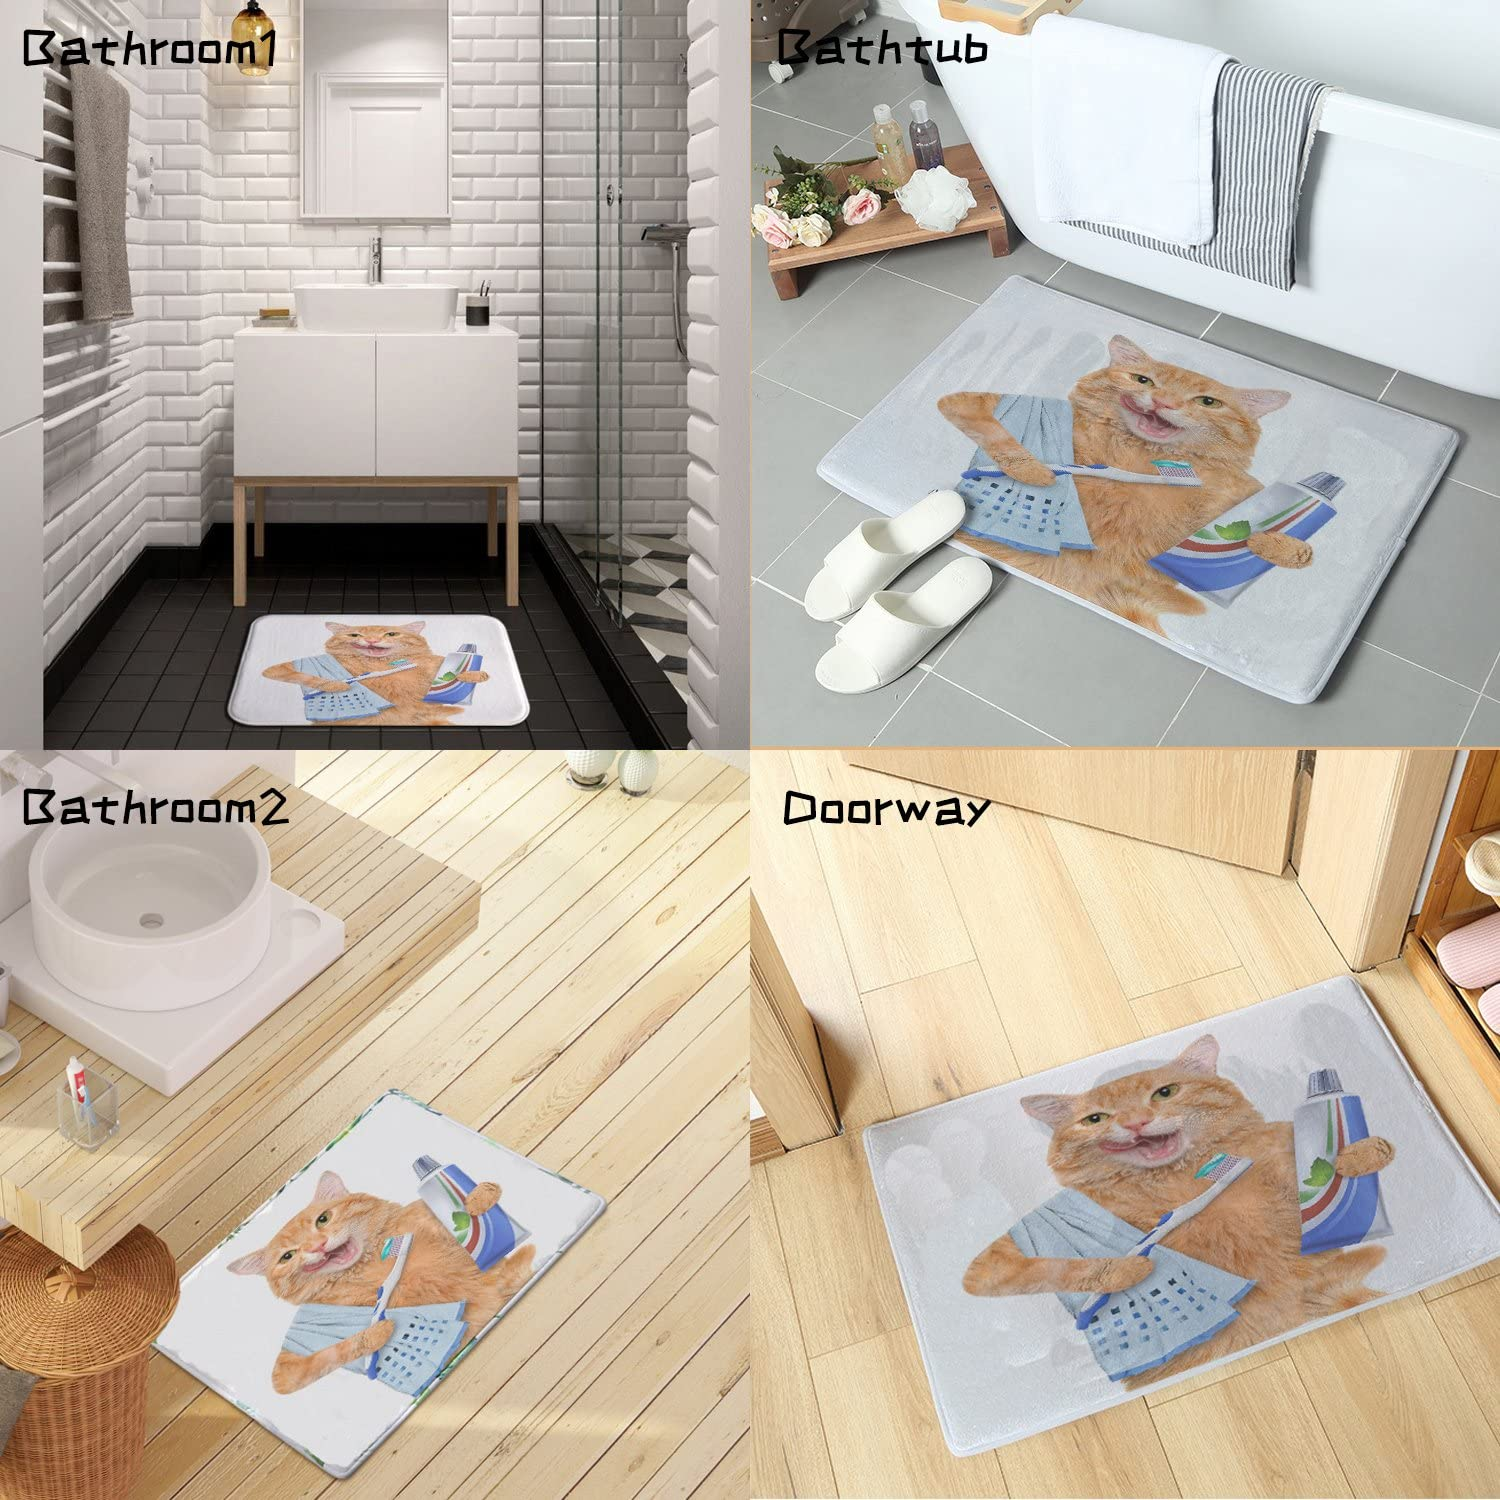 Odor Free 24 L x 16 W Colorful Star Fat cat Brushing Teeth Design Bath mat,Super Absorbent/&Stain Resistant/&Machine-Washable Made of Flannel,Quick-Dry,Non Slip,Non Toxic